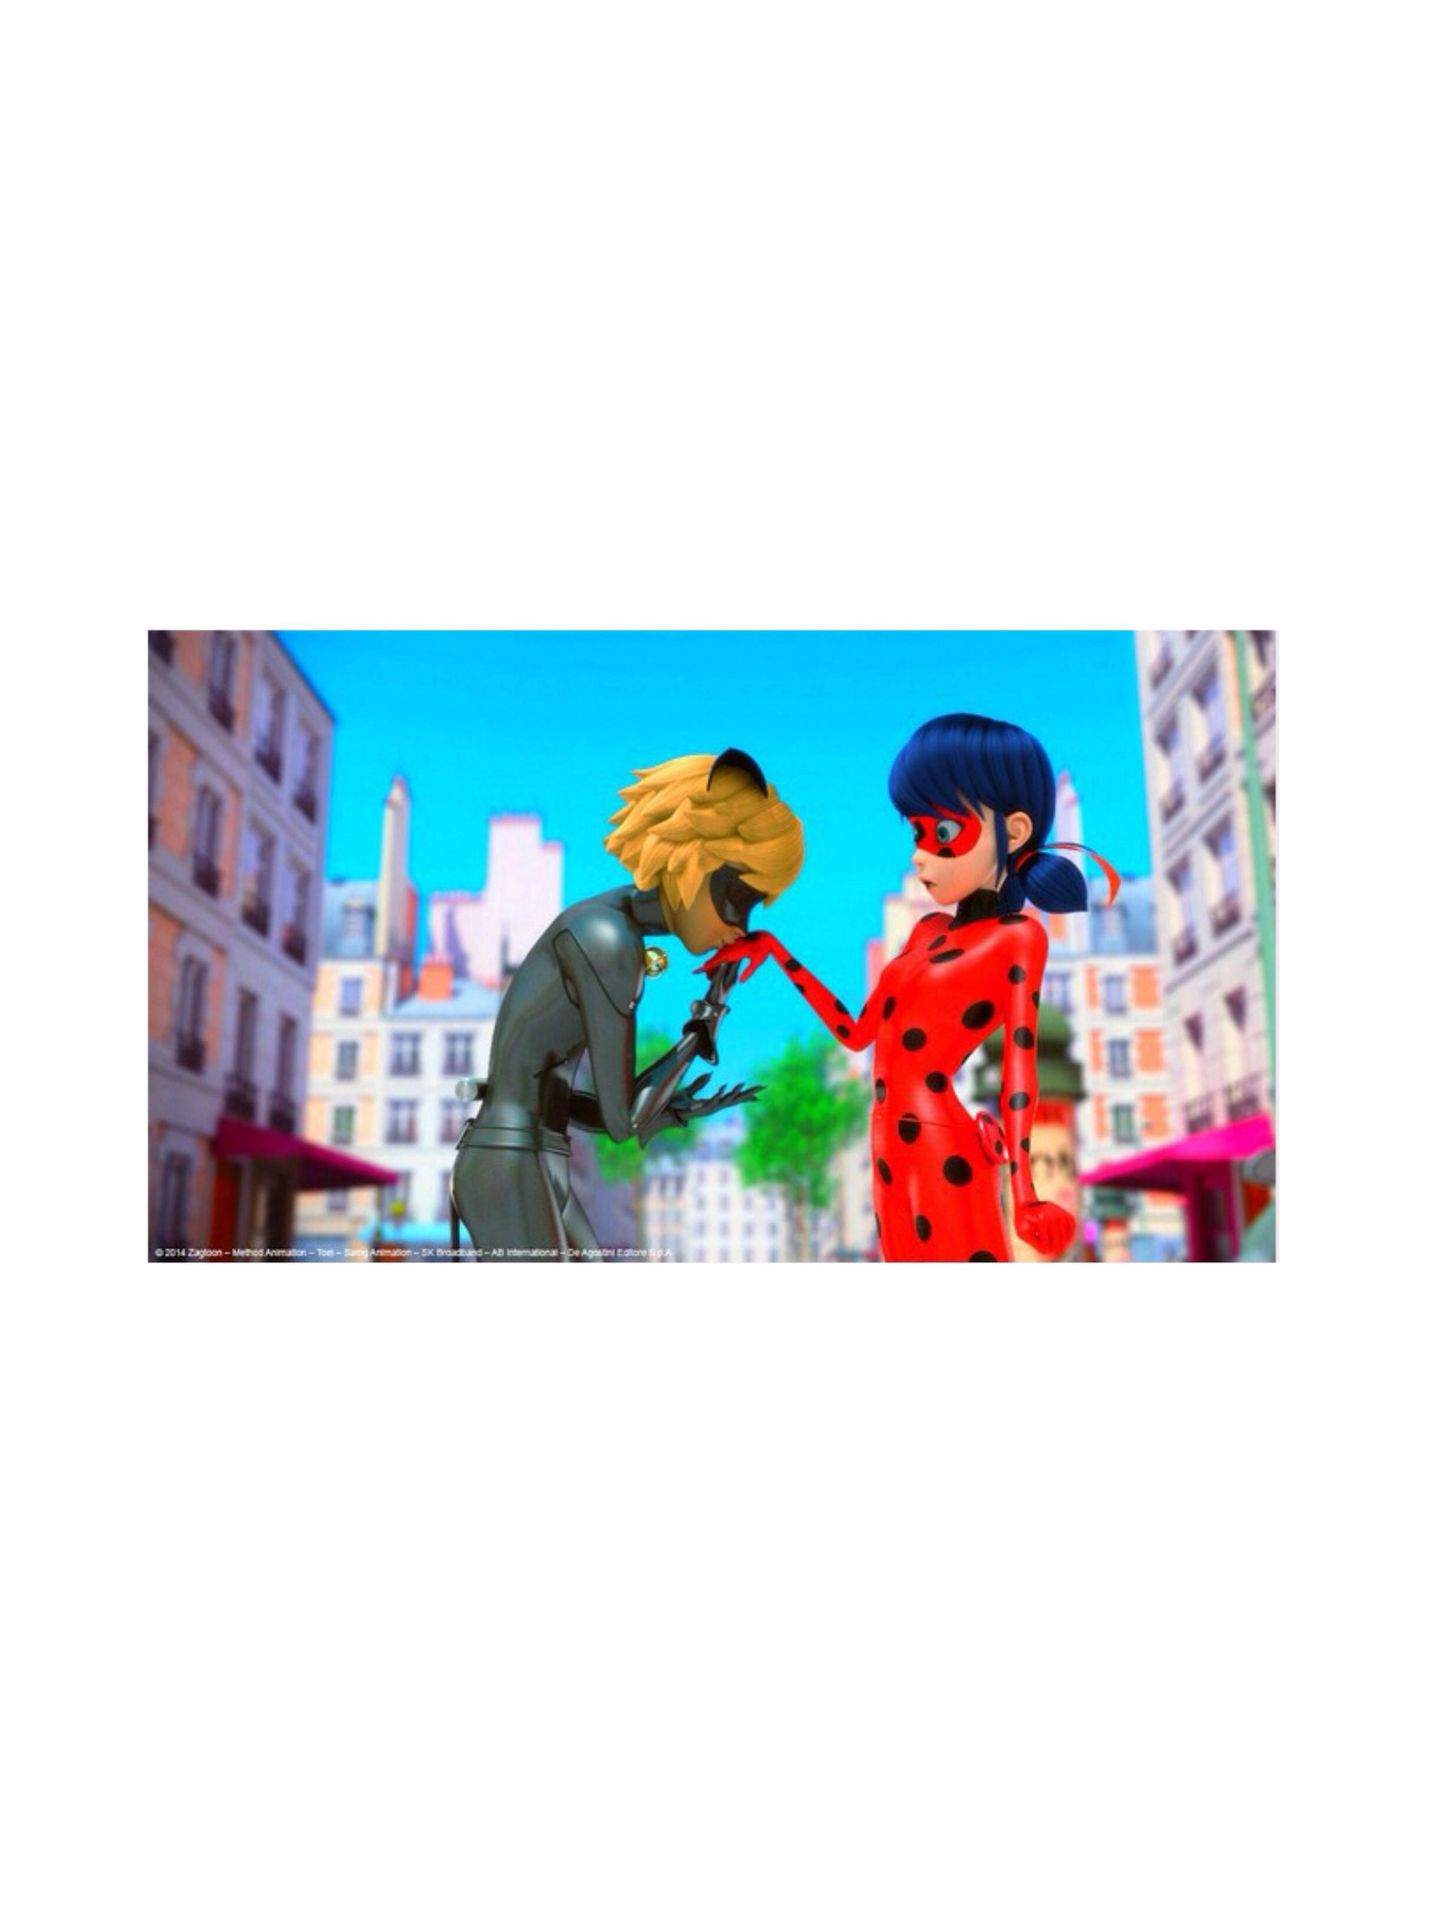 Miraculous Ladybug One-Shots - Marinette x Chat Noir - Wattpad